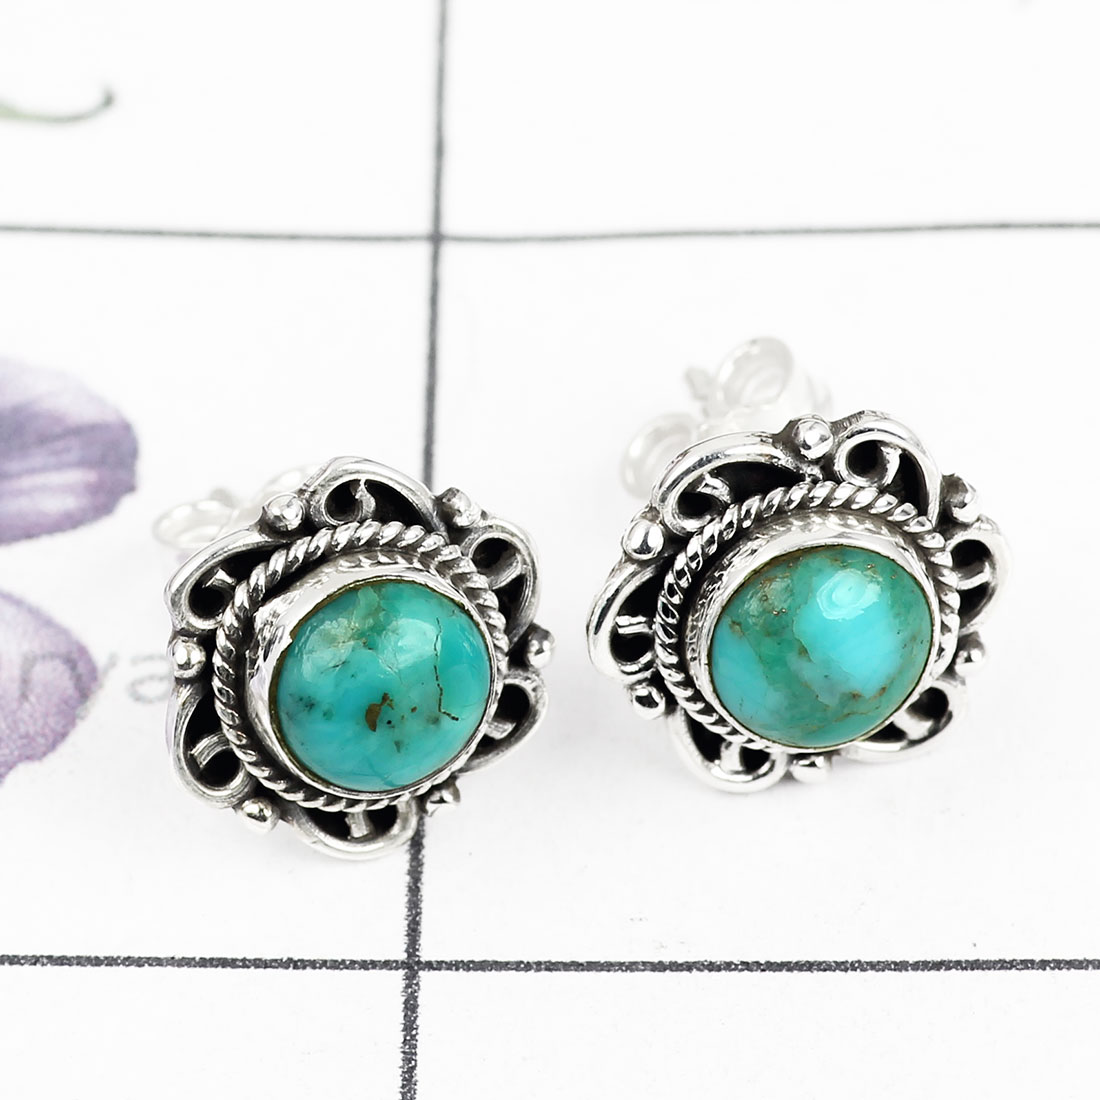 BLUE TURQUOISE H - BLE994-NATURAL GEMSTONE DESIGNER STUD EARRING WITH 925 STERLING